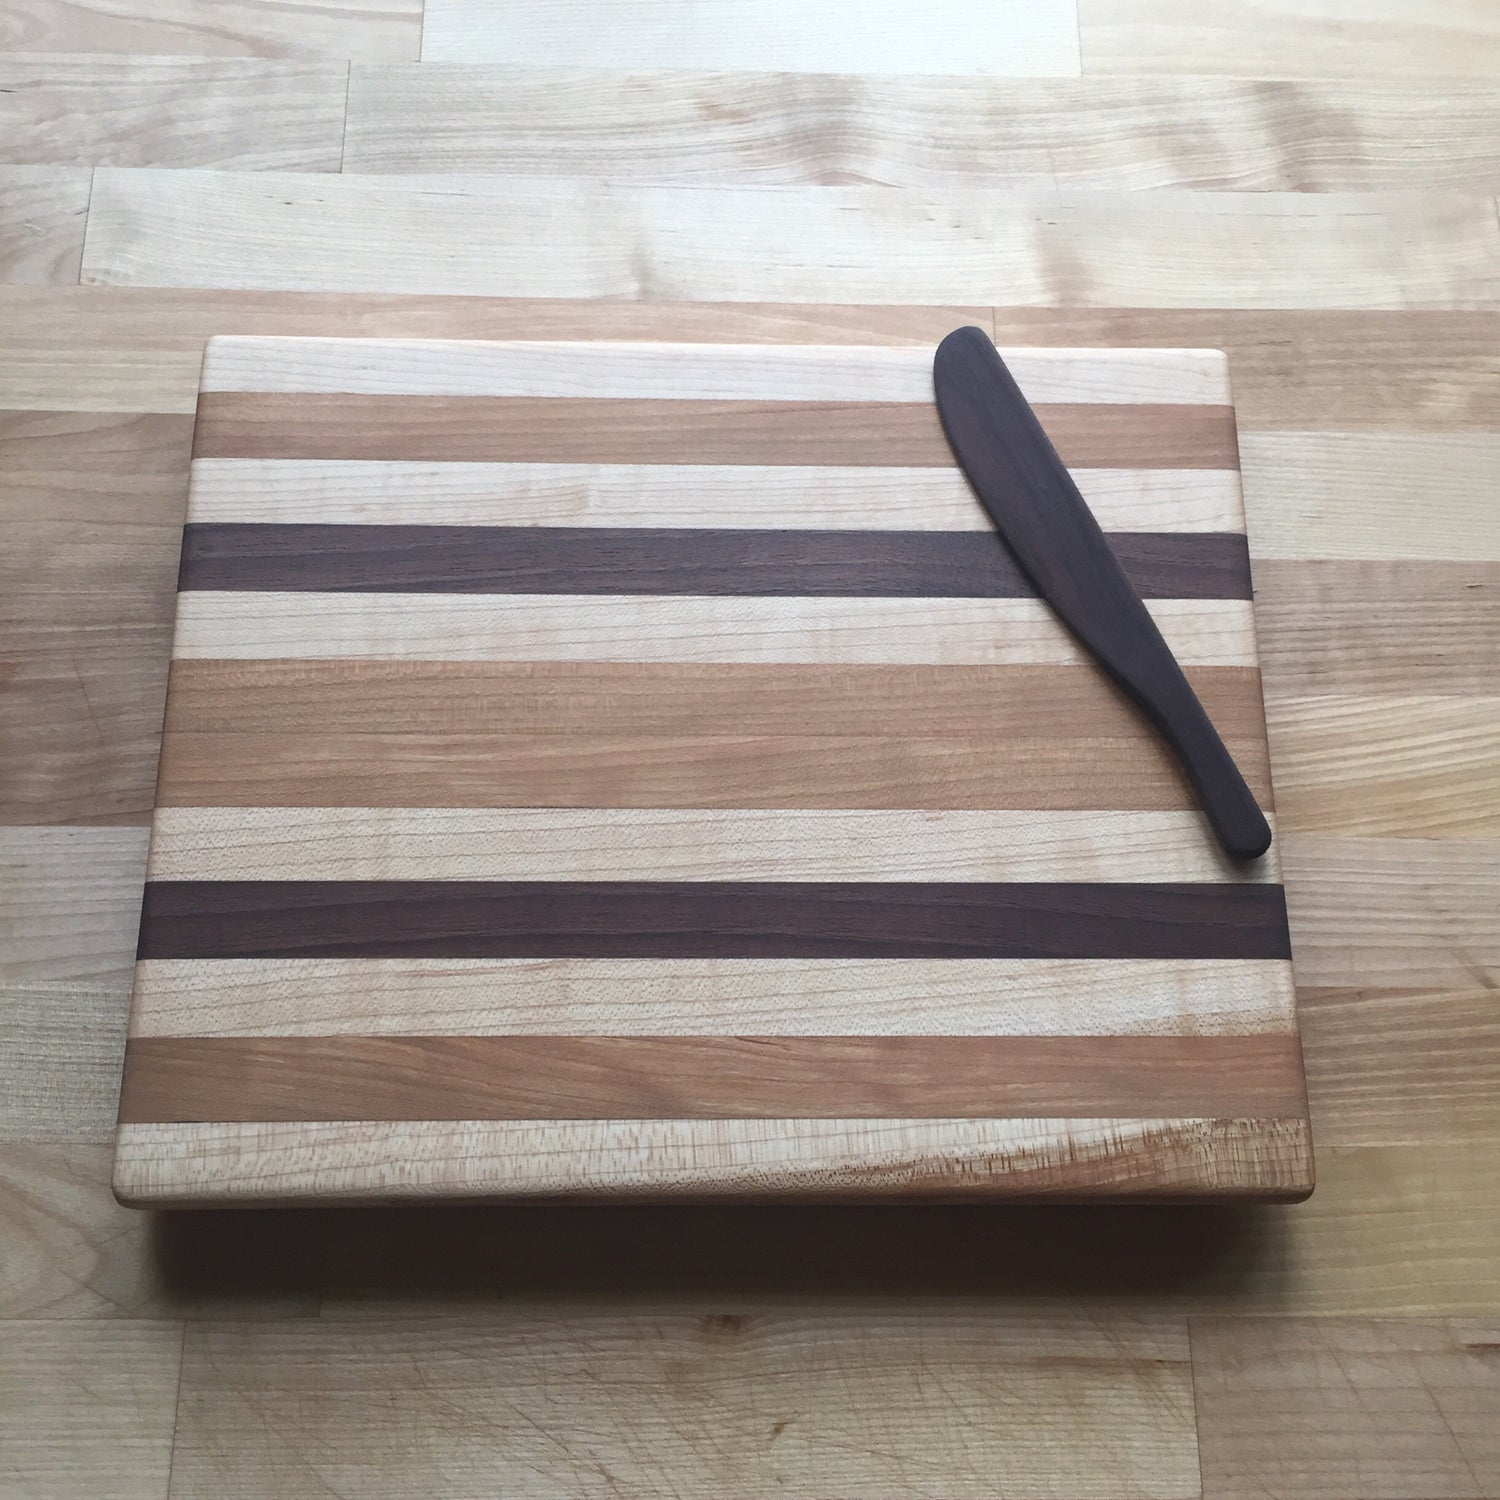 Image of Cherry, Maple, & Walnut Edge-Grain Cutting Board #1